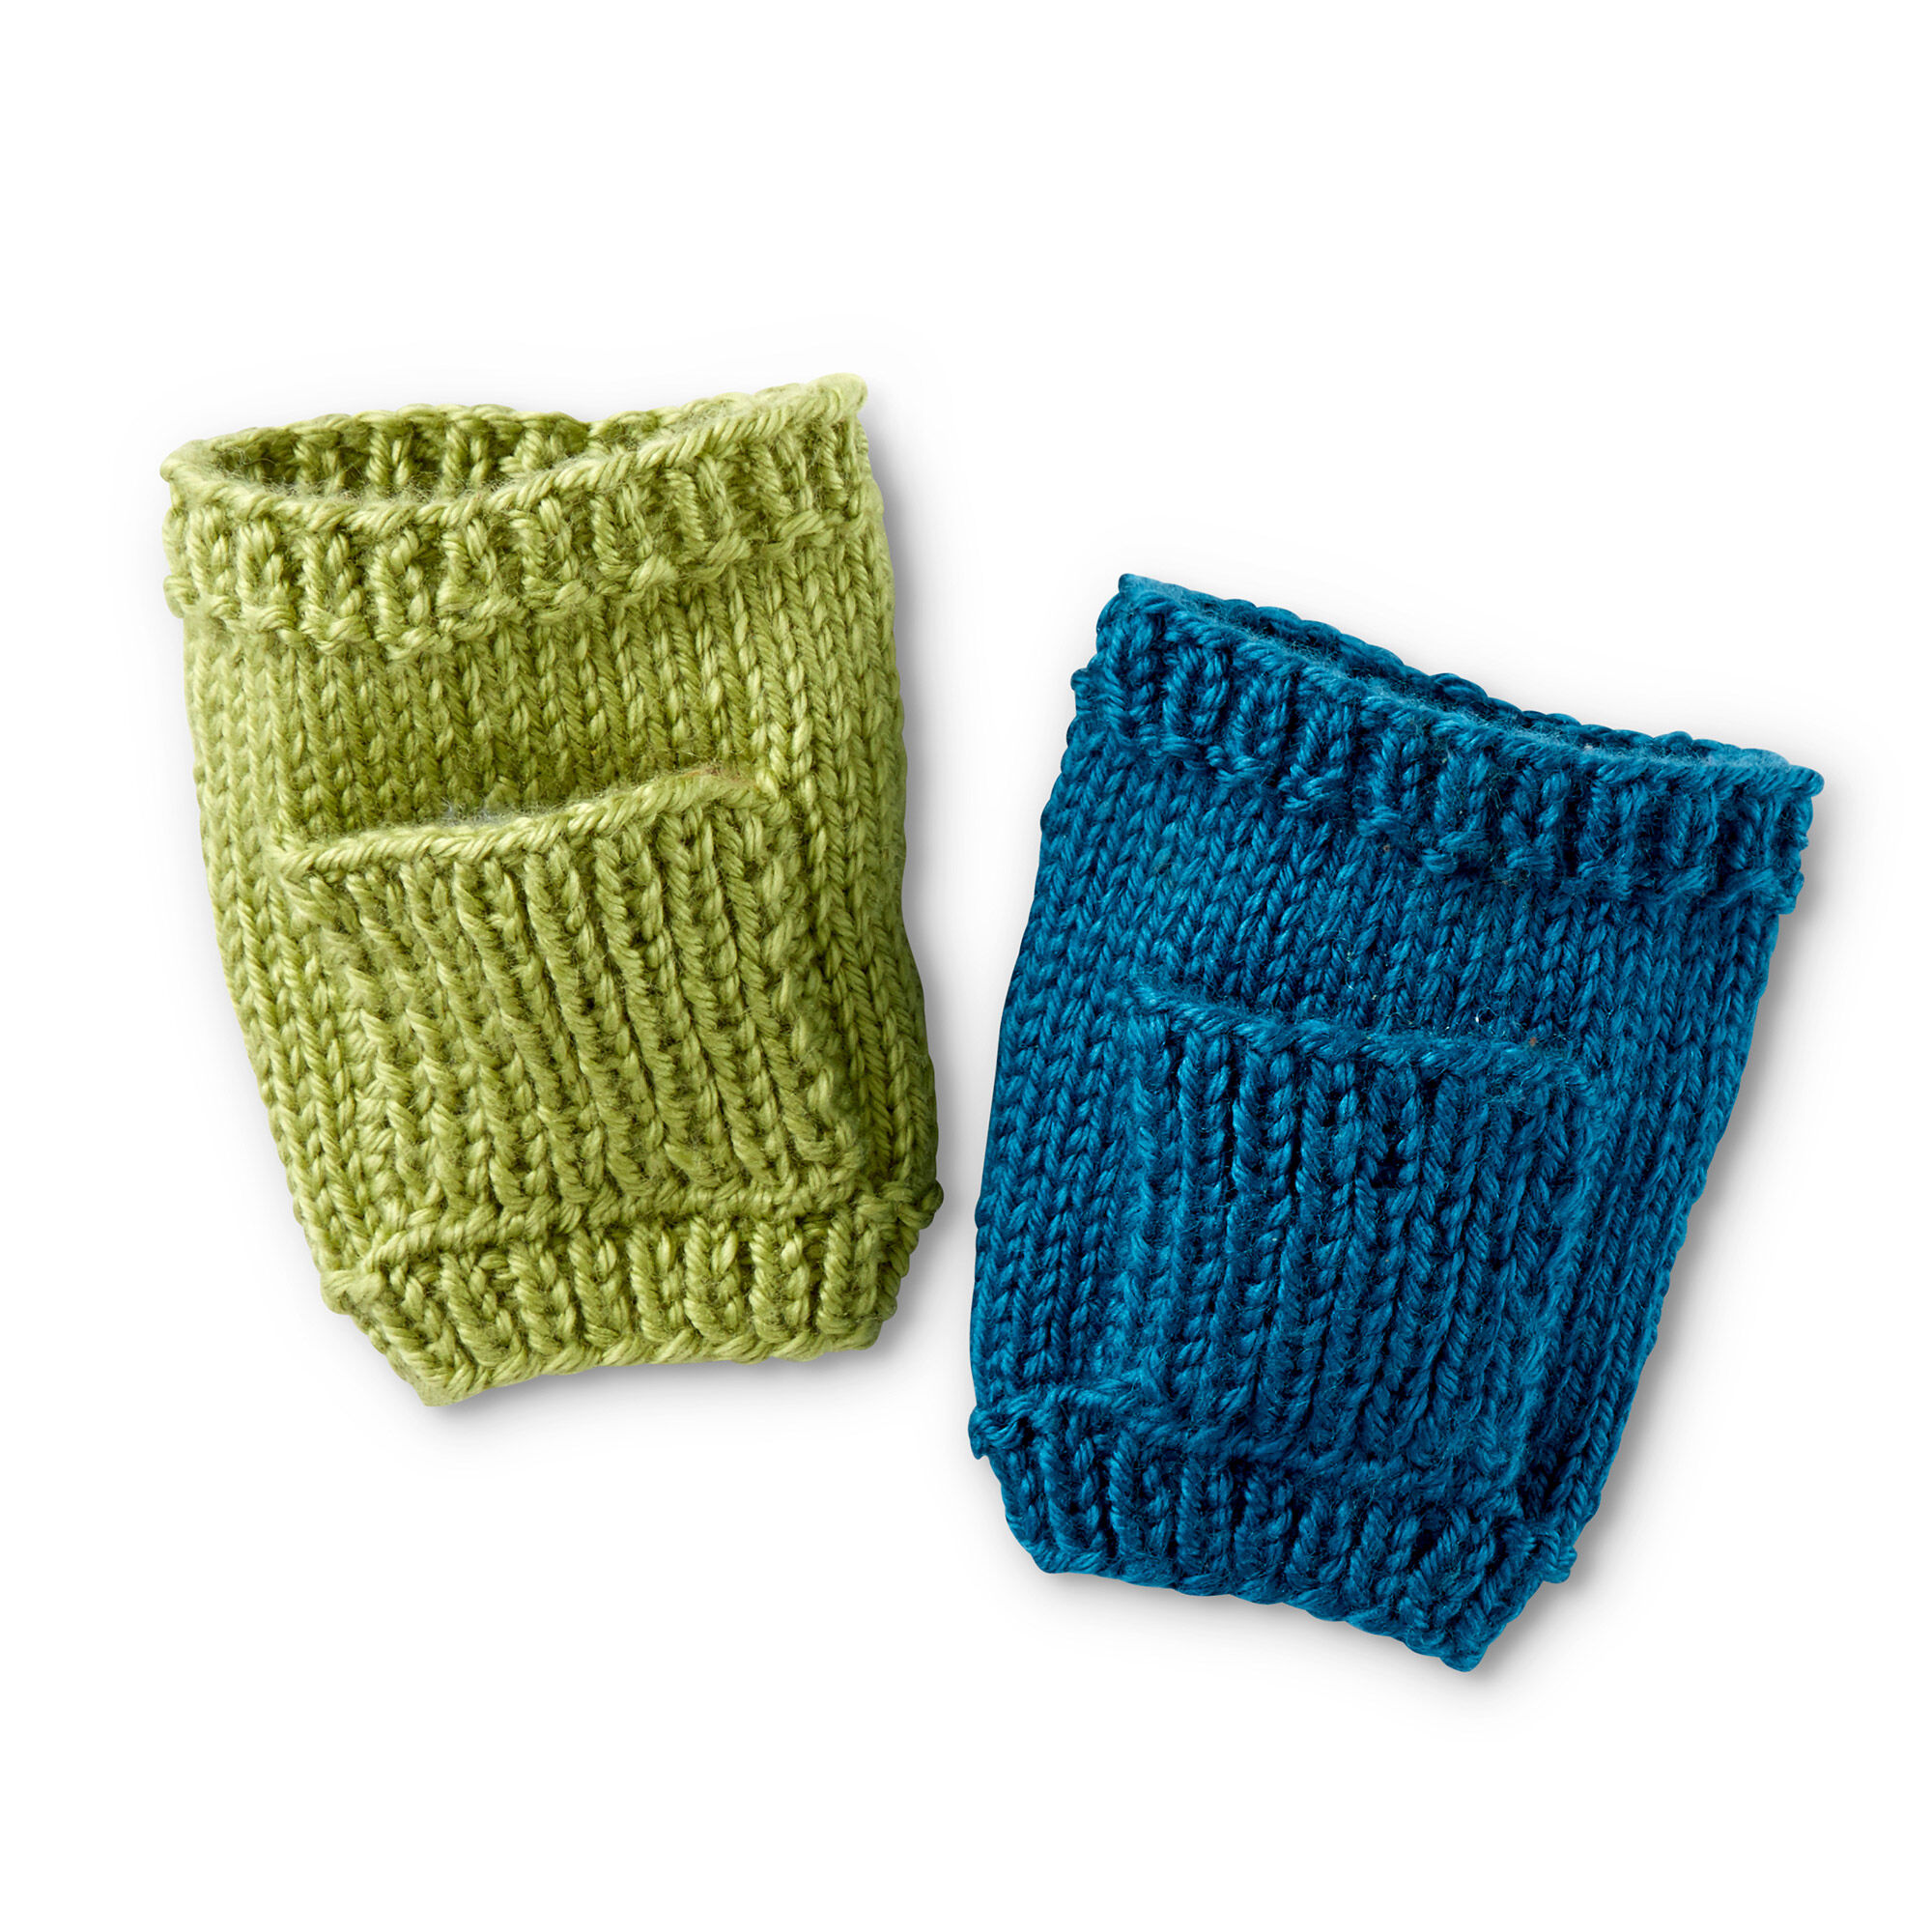 Caron Knit Pocket Cup Cozy Yarnspirations